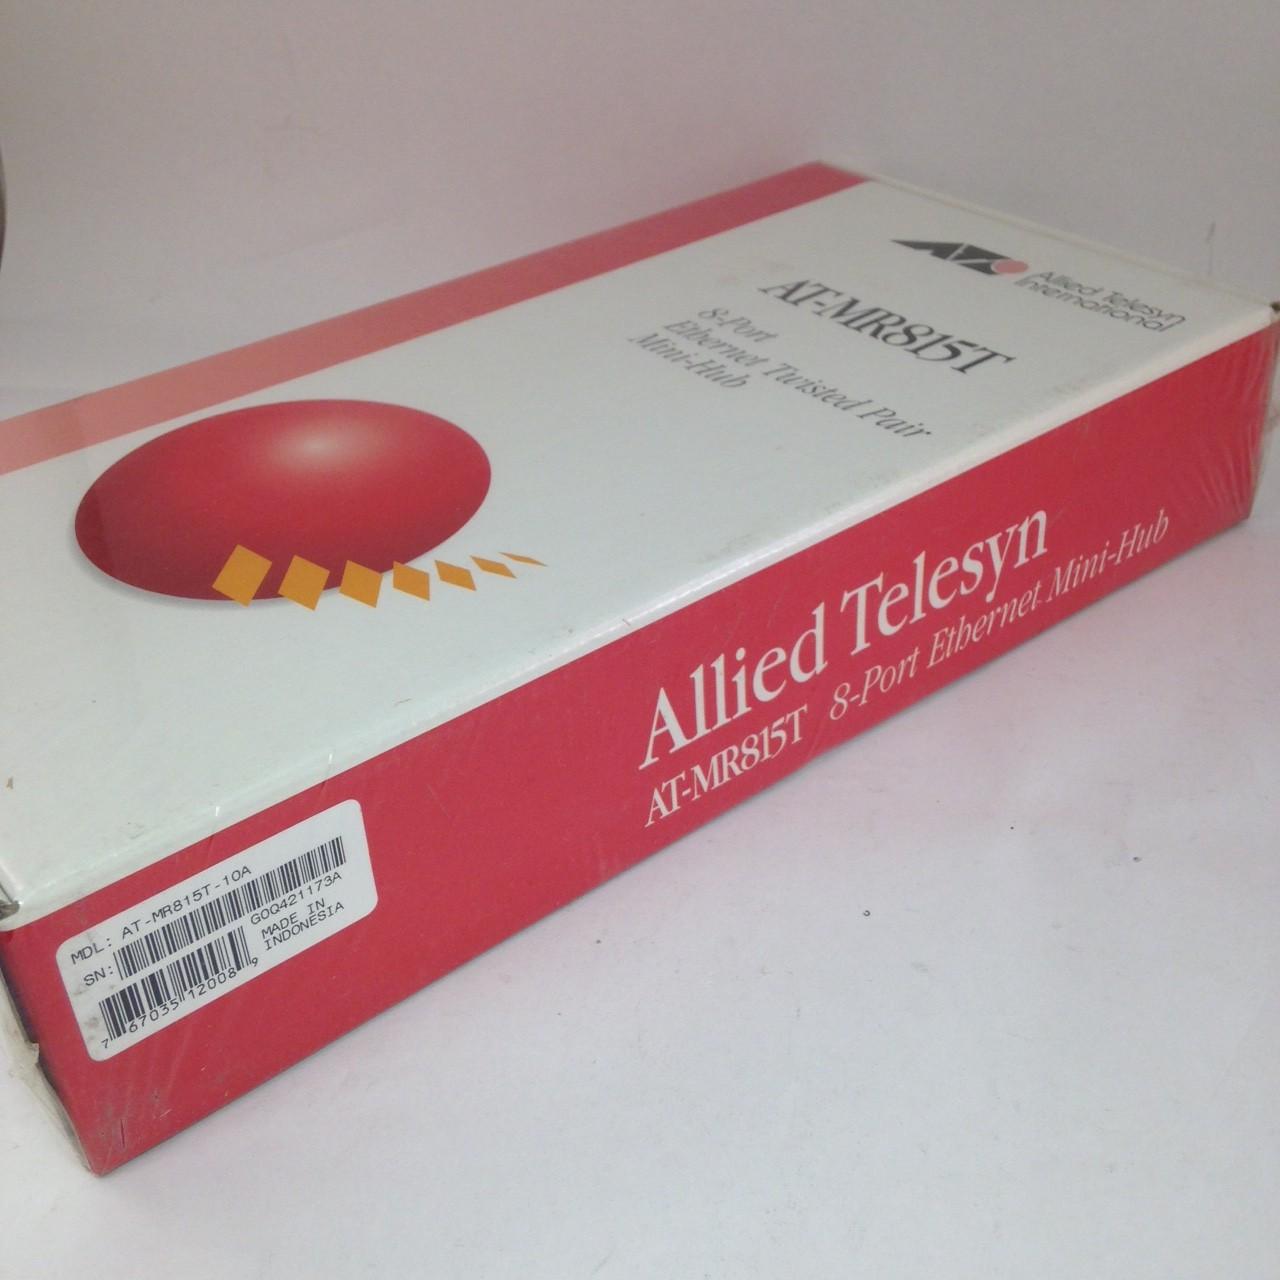 Allied Telesyn International AT-MR815T ethernet twisted pair mini hub